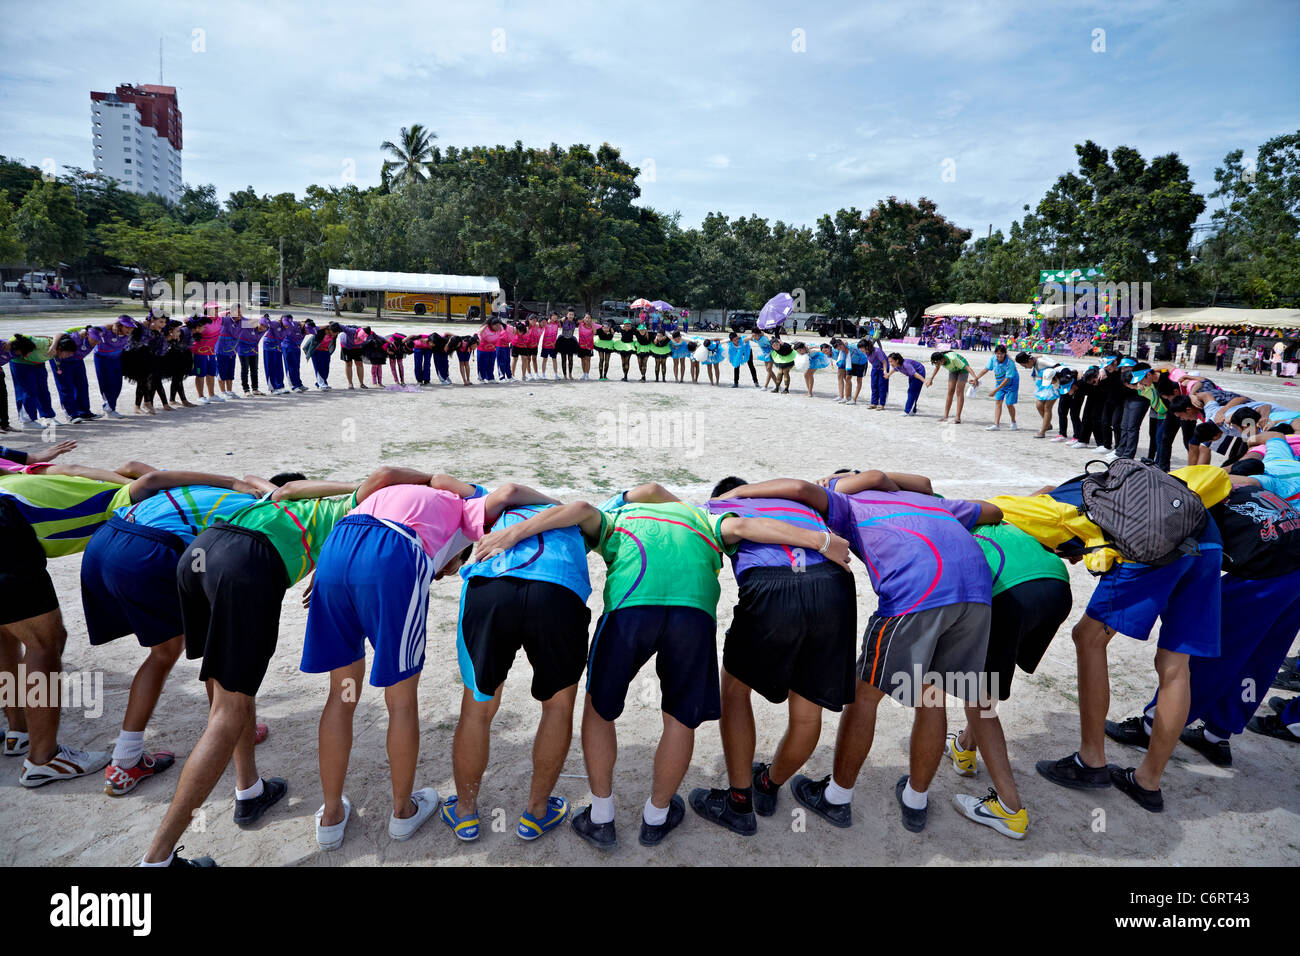 Circle of friendship and gesture of camaraderie by competing local teams at the culmination of an Asian school sports - Stock Image